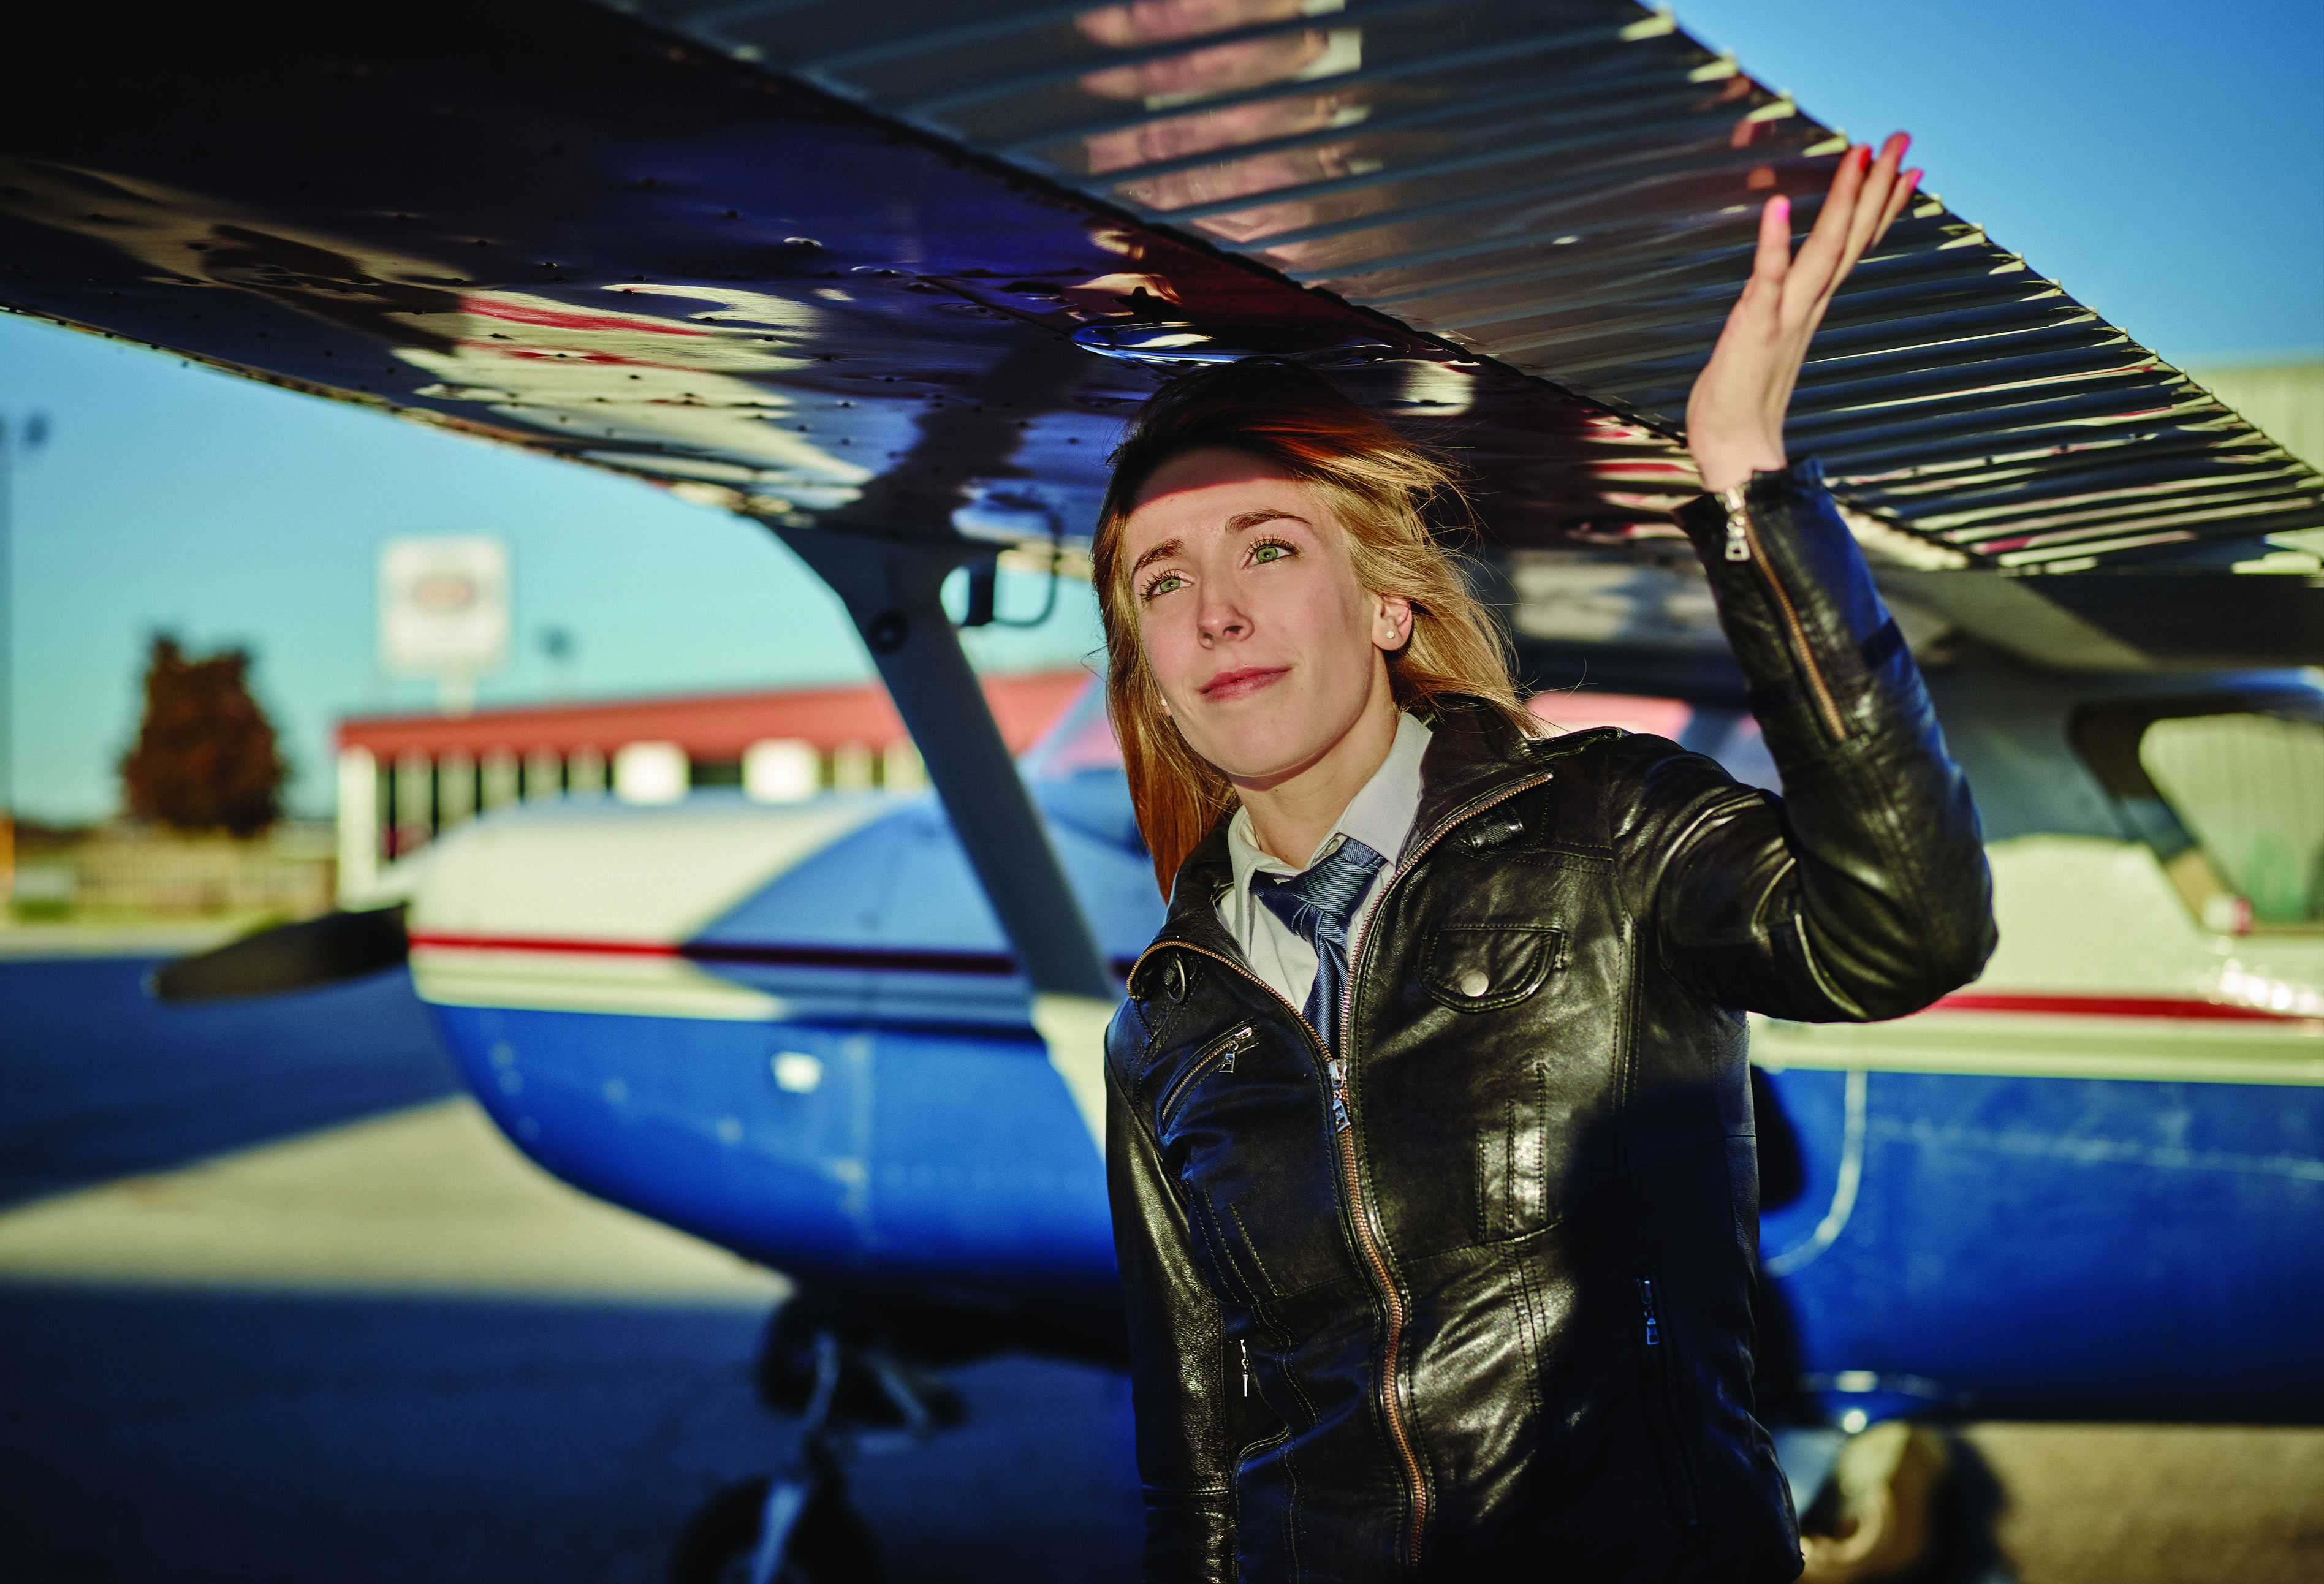 Chelsea Anne Edwards under the wings of a plane